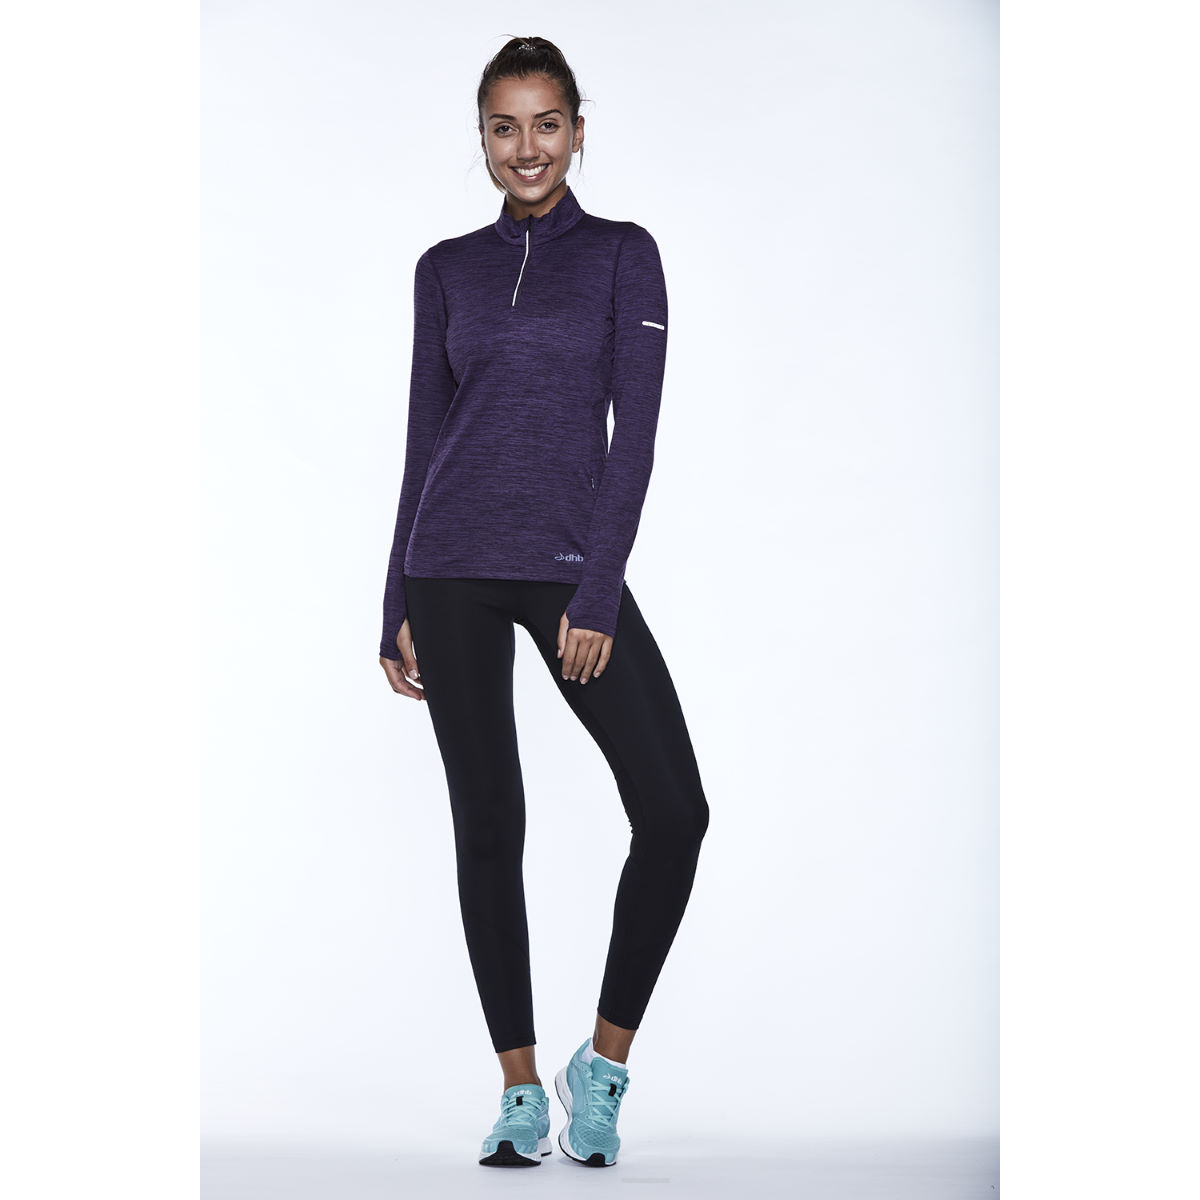 dhb Women's Long Sleeve Winter 1/4 Zip Top - UK 12 Grape